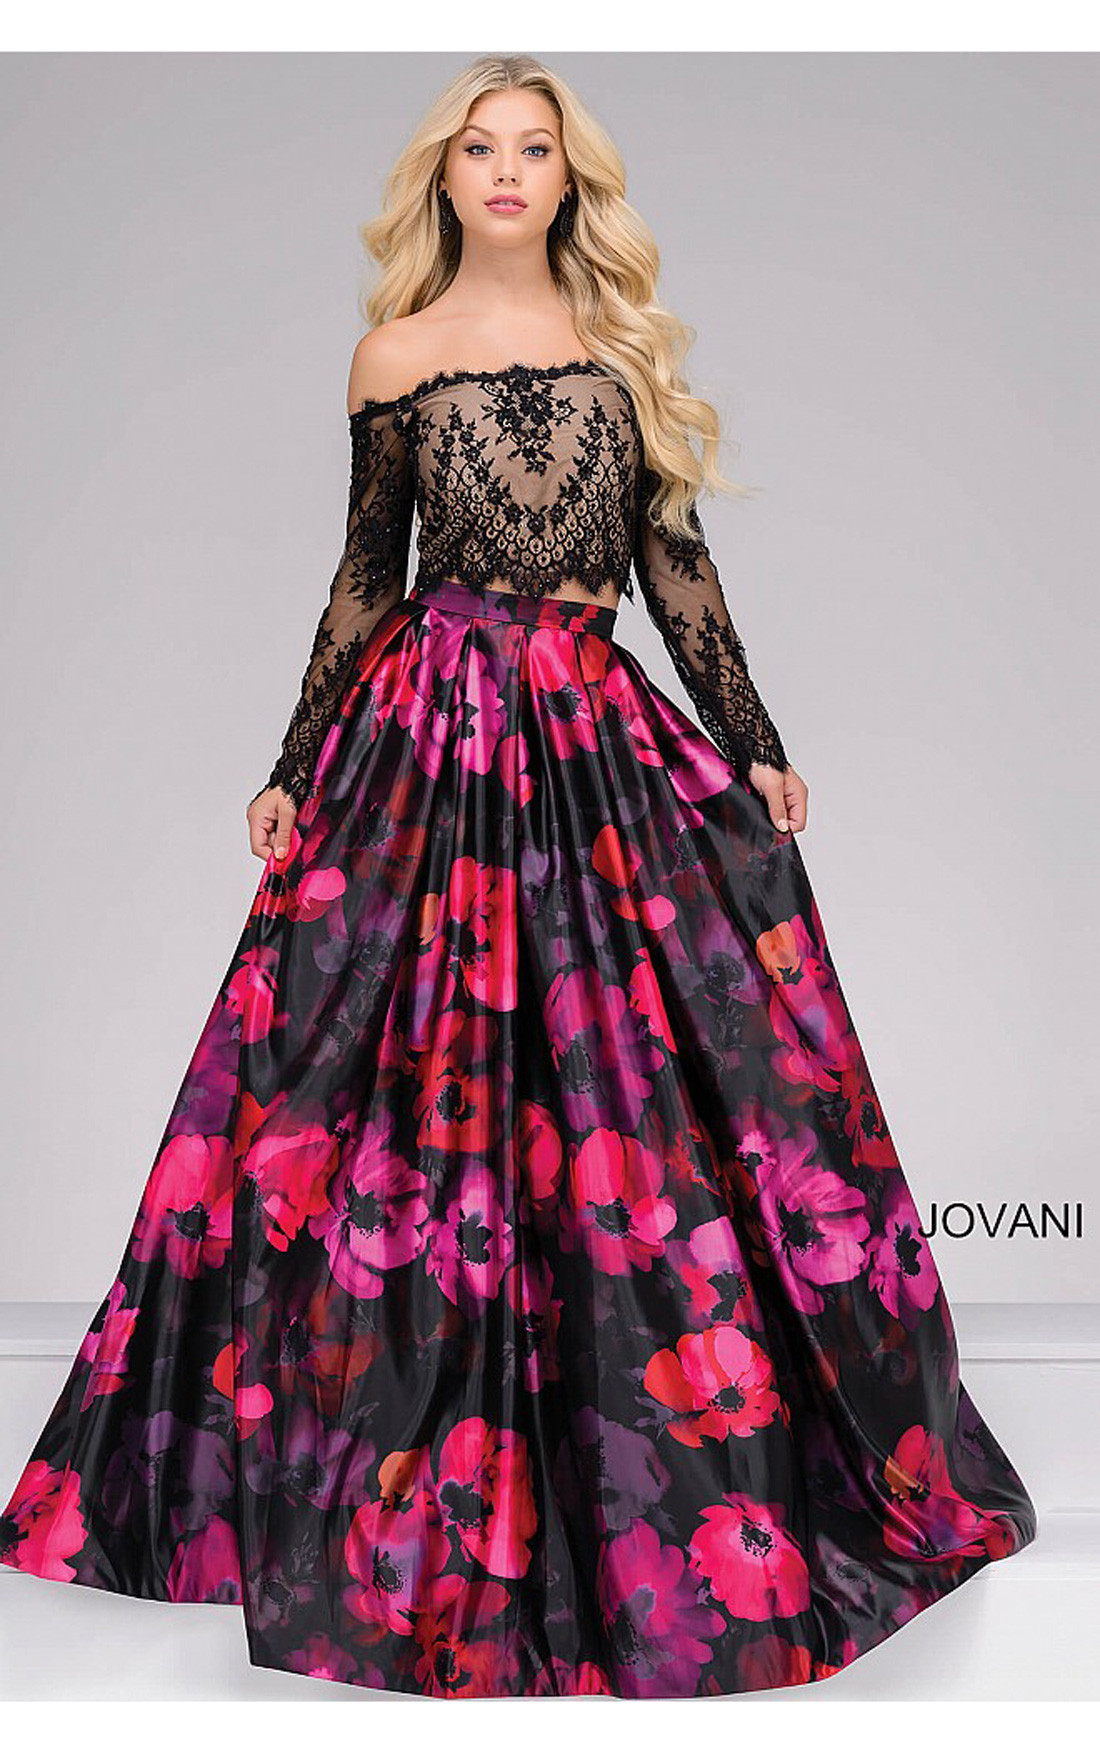 Jovani Dresses | Womens Black and Multi Floral Print Two-Piece Long ...